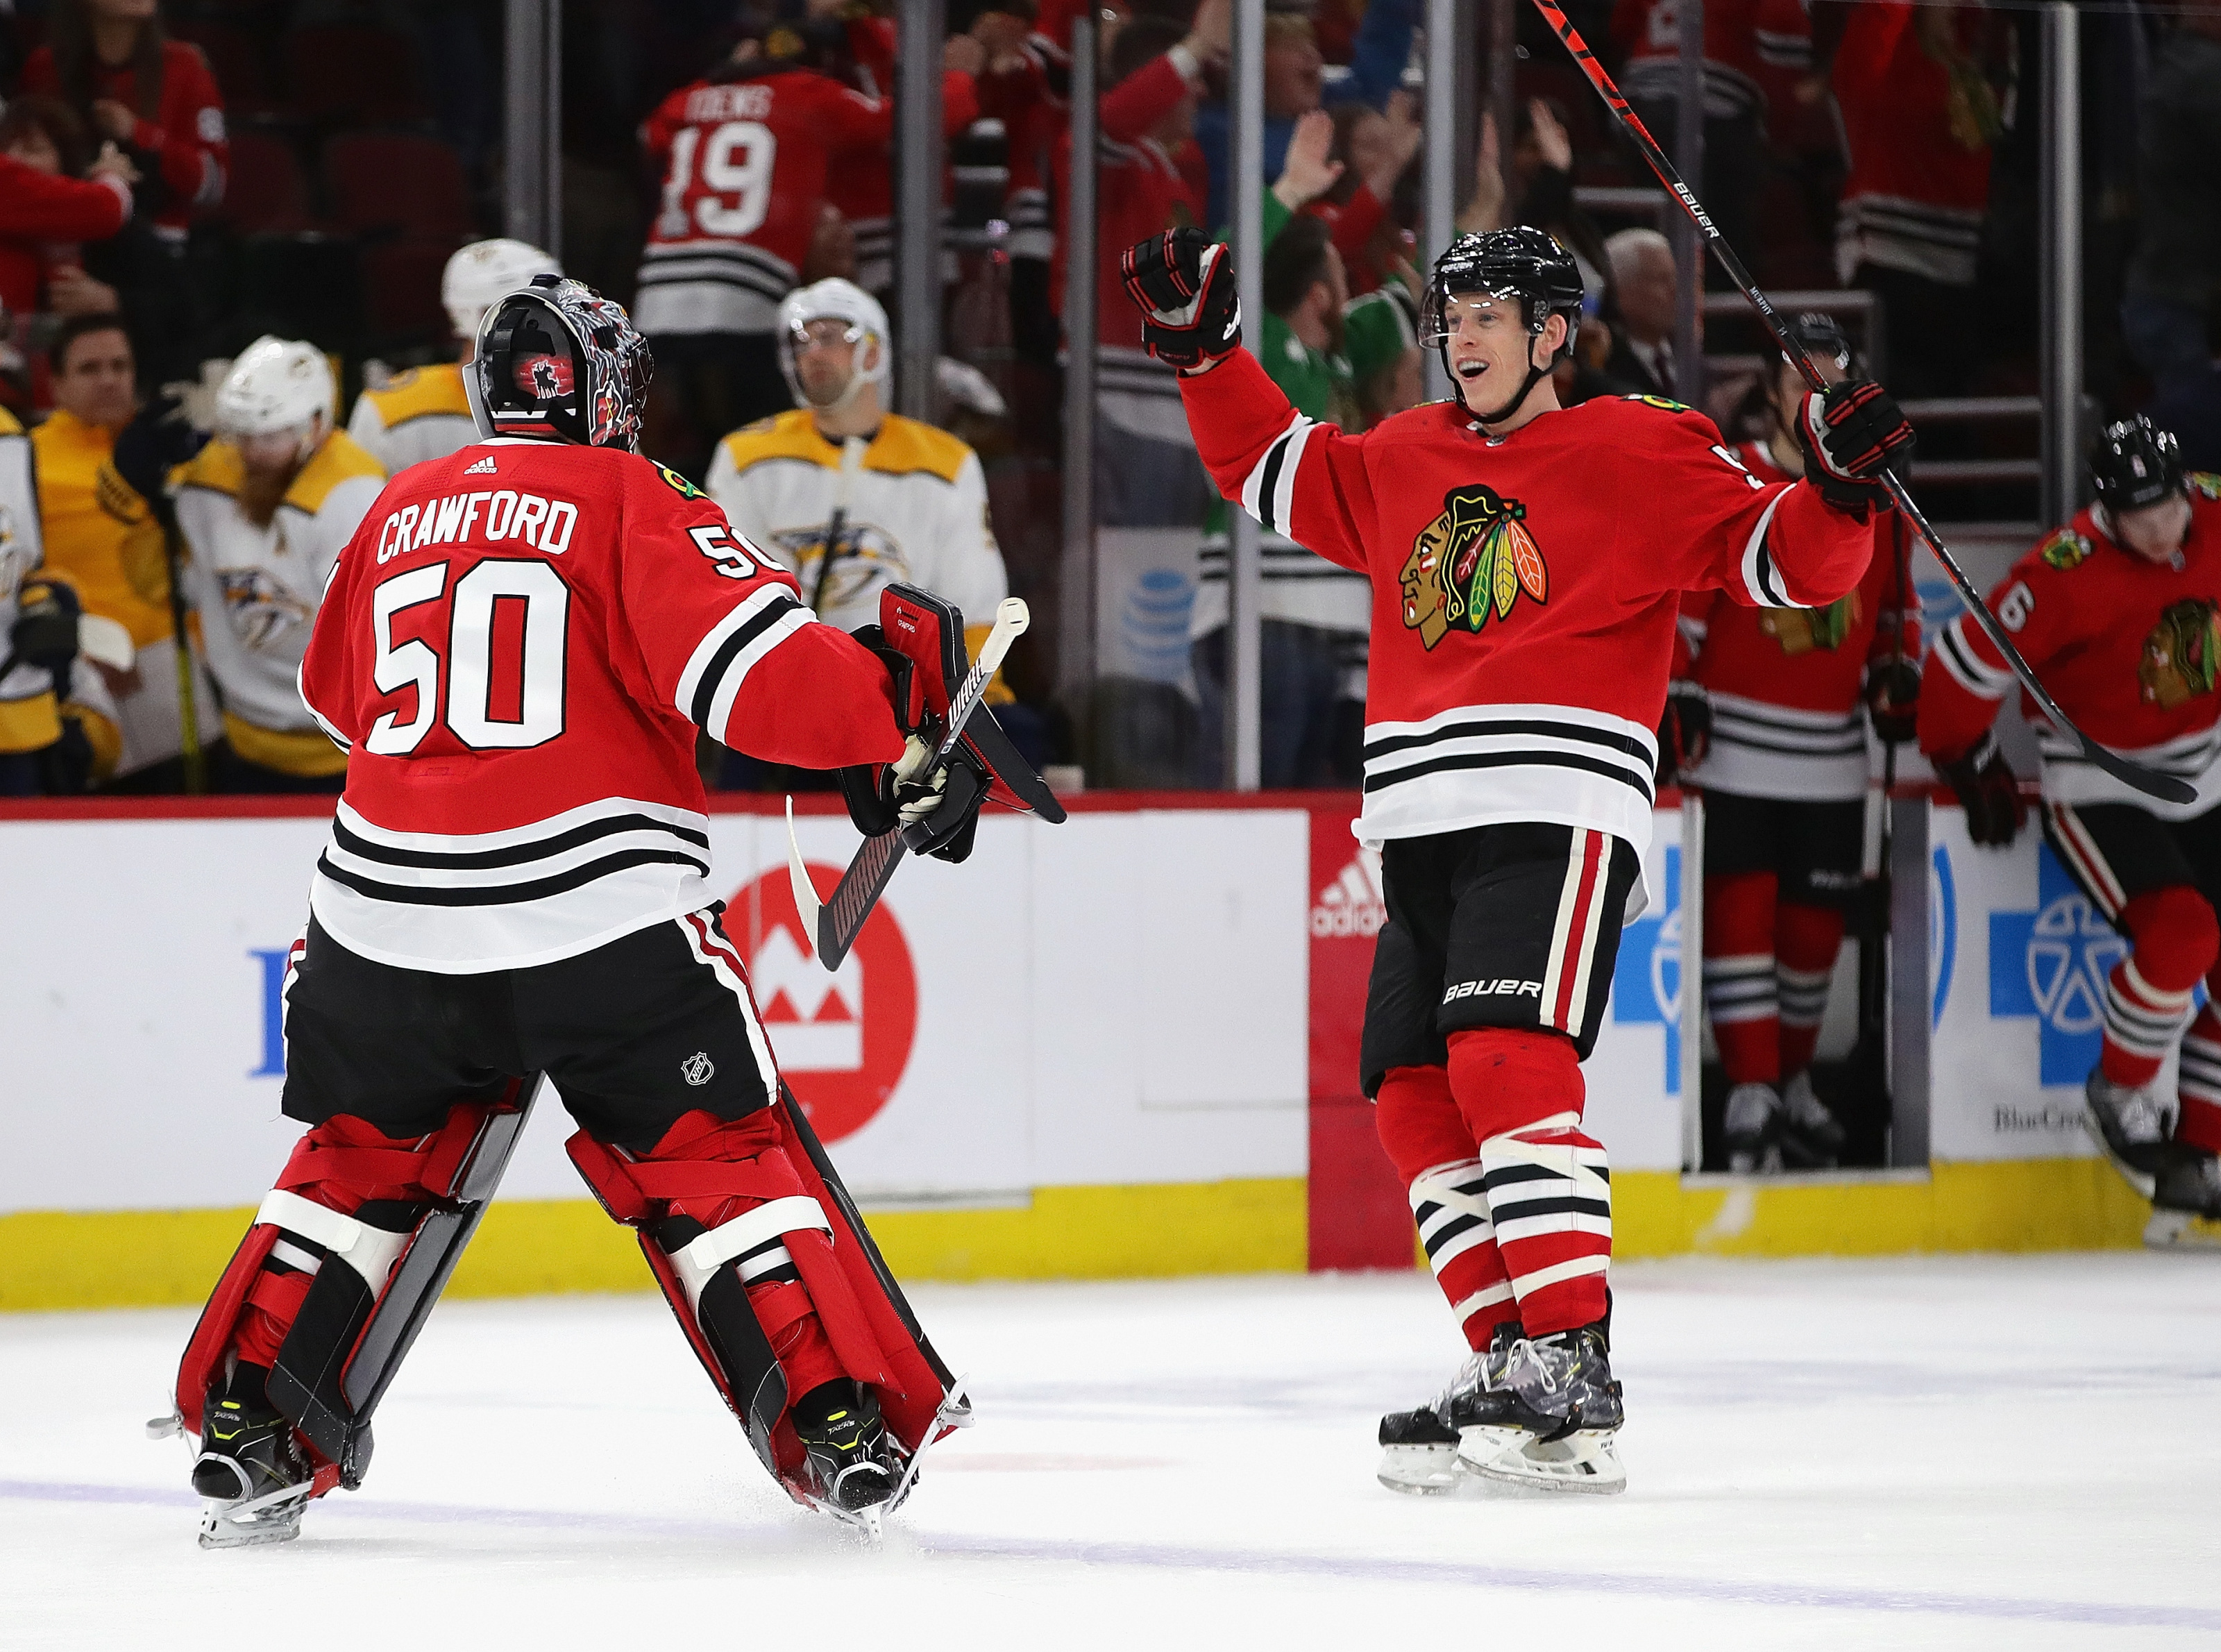 Chicago Blackhawks: Last game before trade deadline brings questions